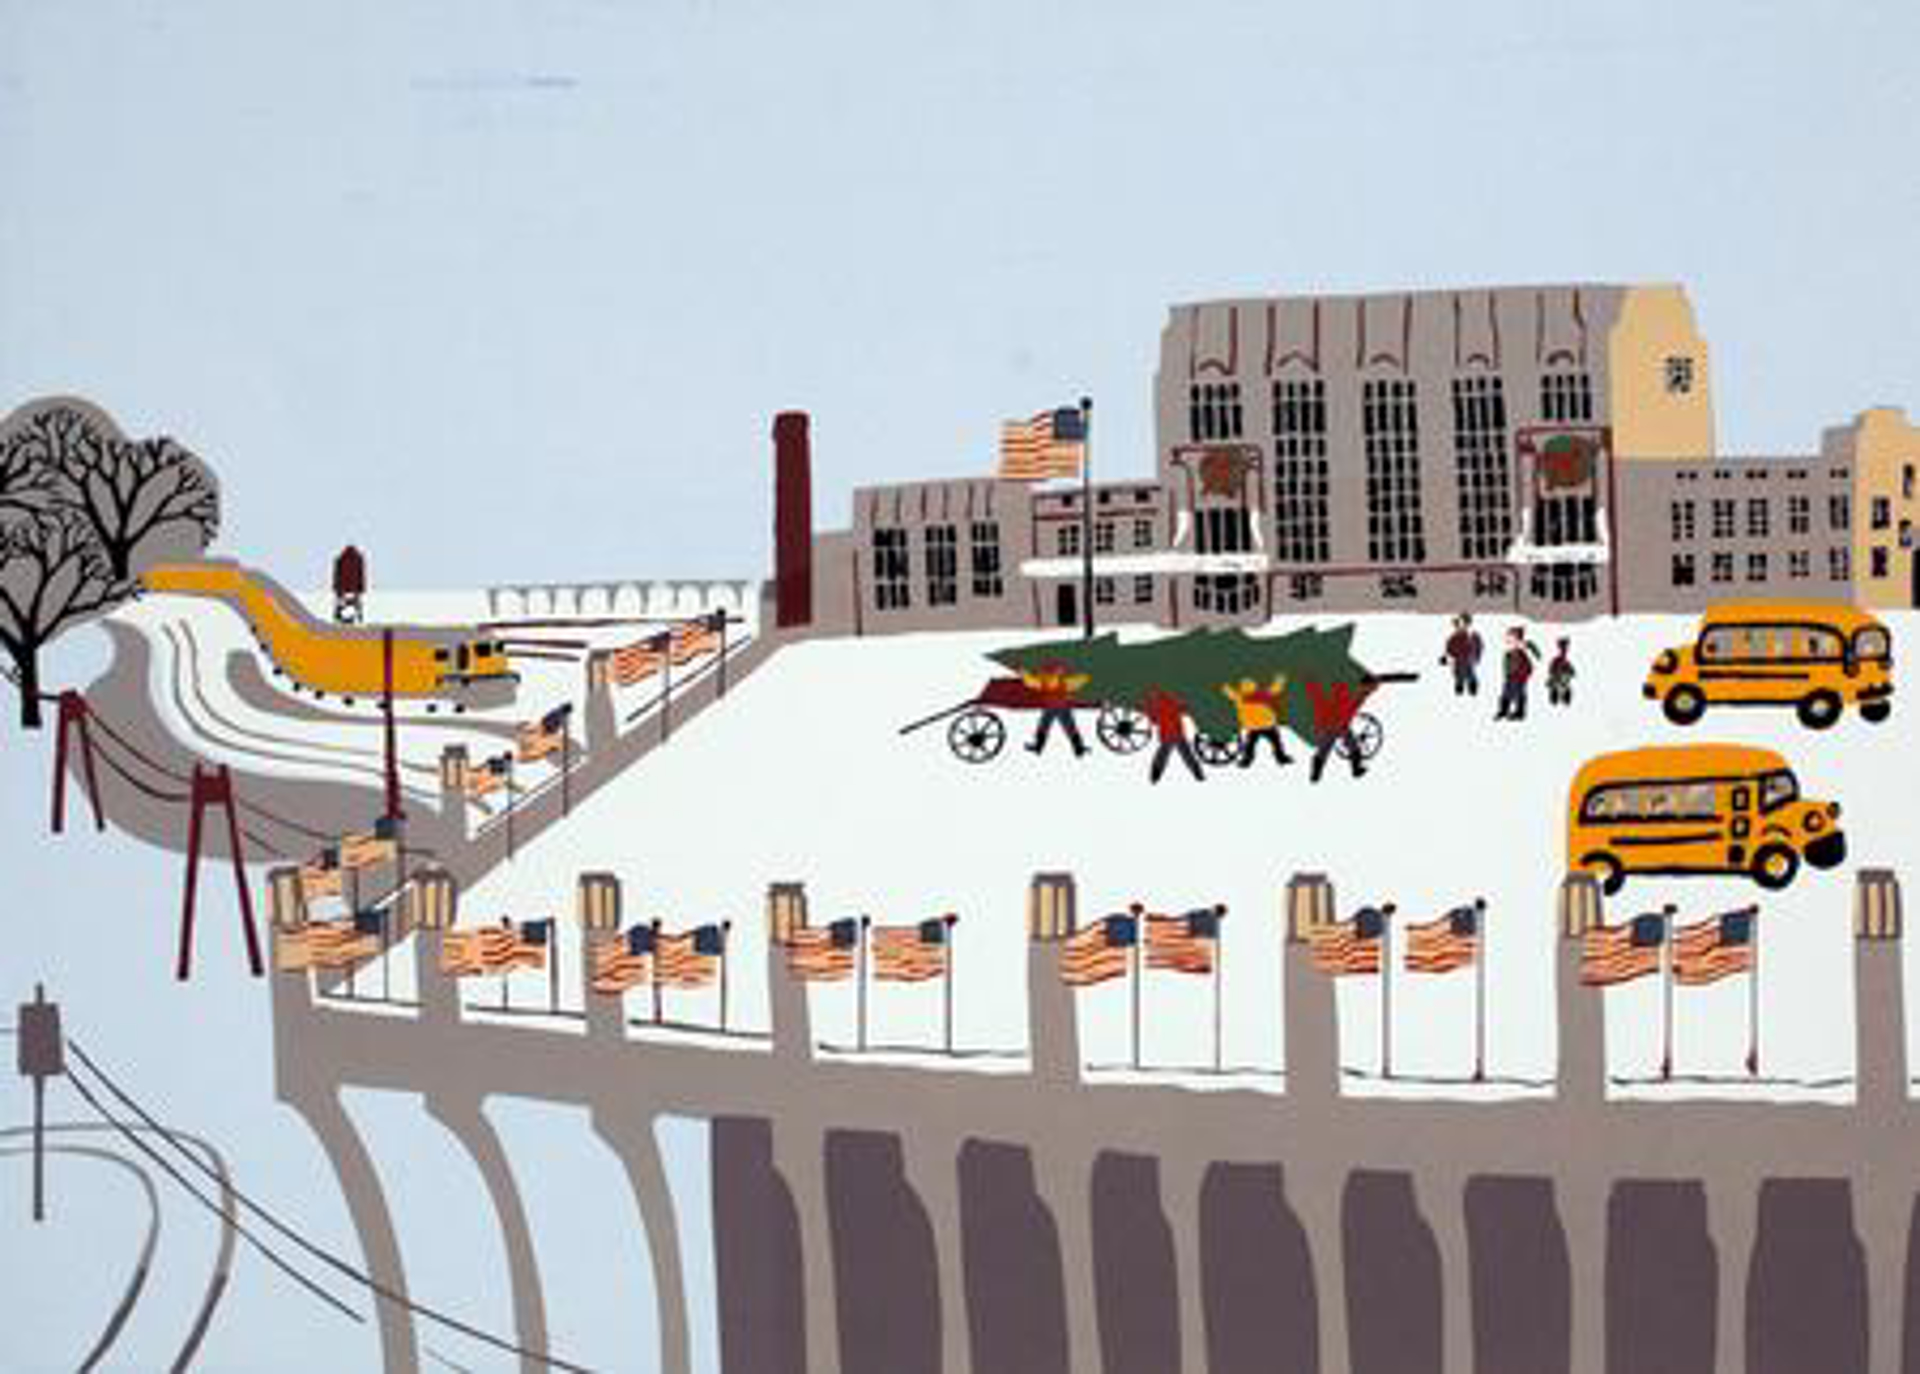 Christmas at Union Station by Judith Welk